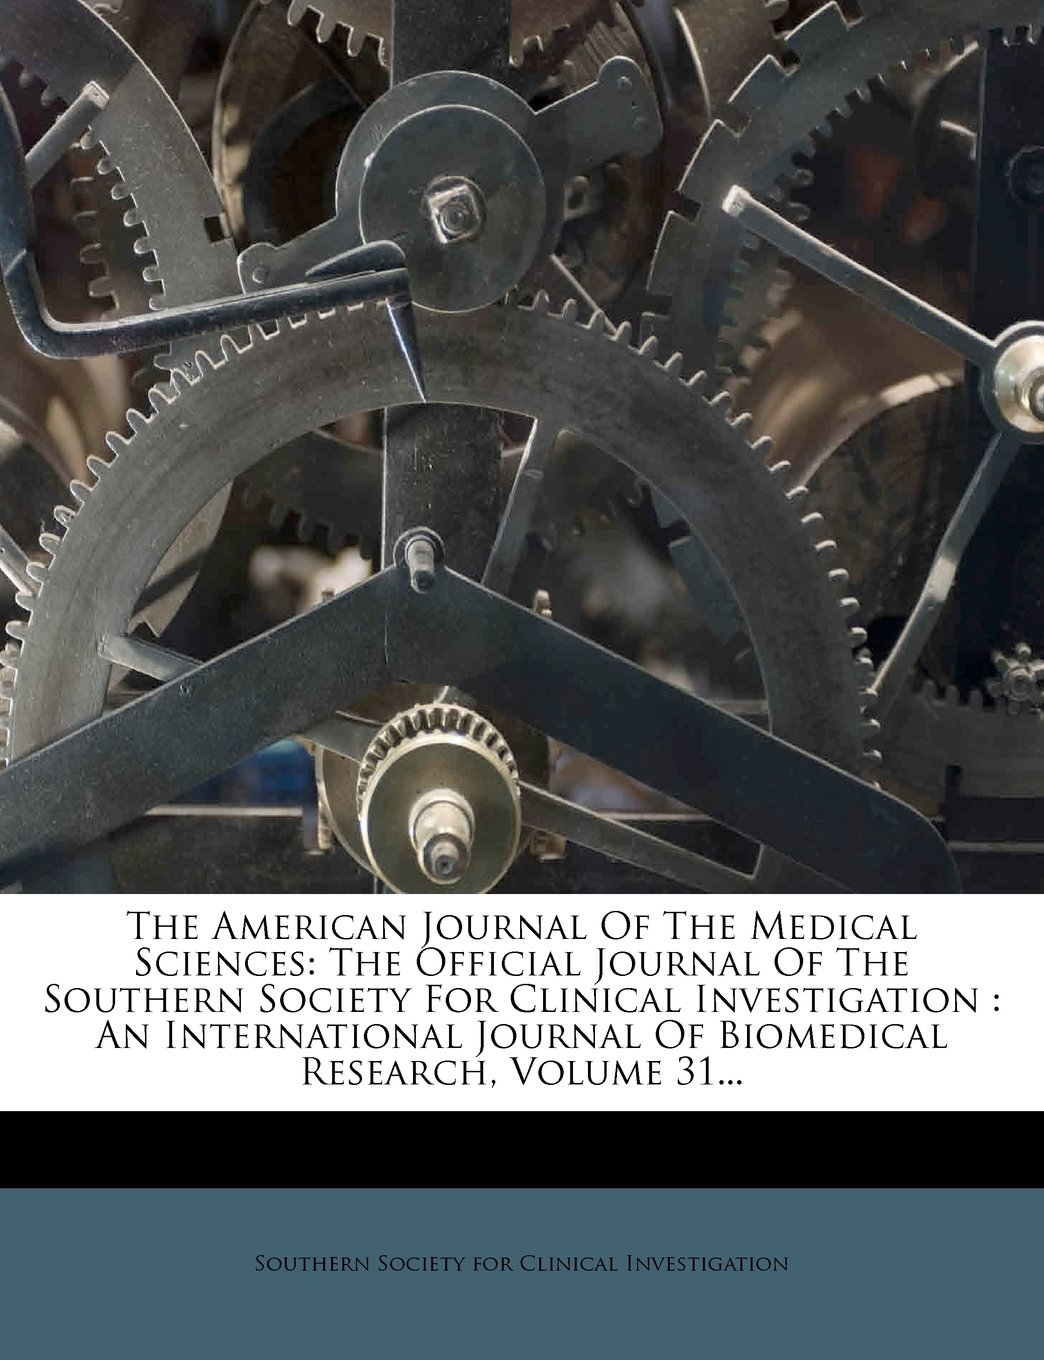 Download The American Journal Of The Medical Sciences: The Official Journal Of The Southern Society For Clinical Investigation : An International Journal Of Biomedical Research, Volume 31... ebook